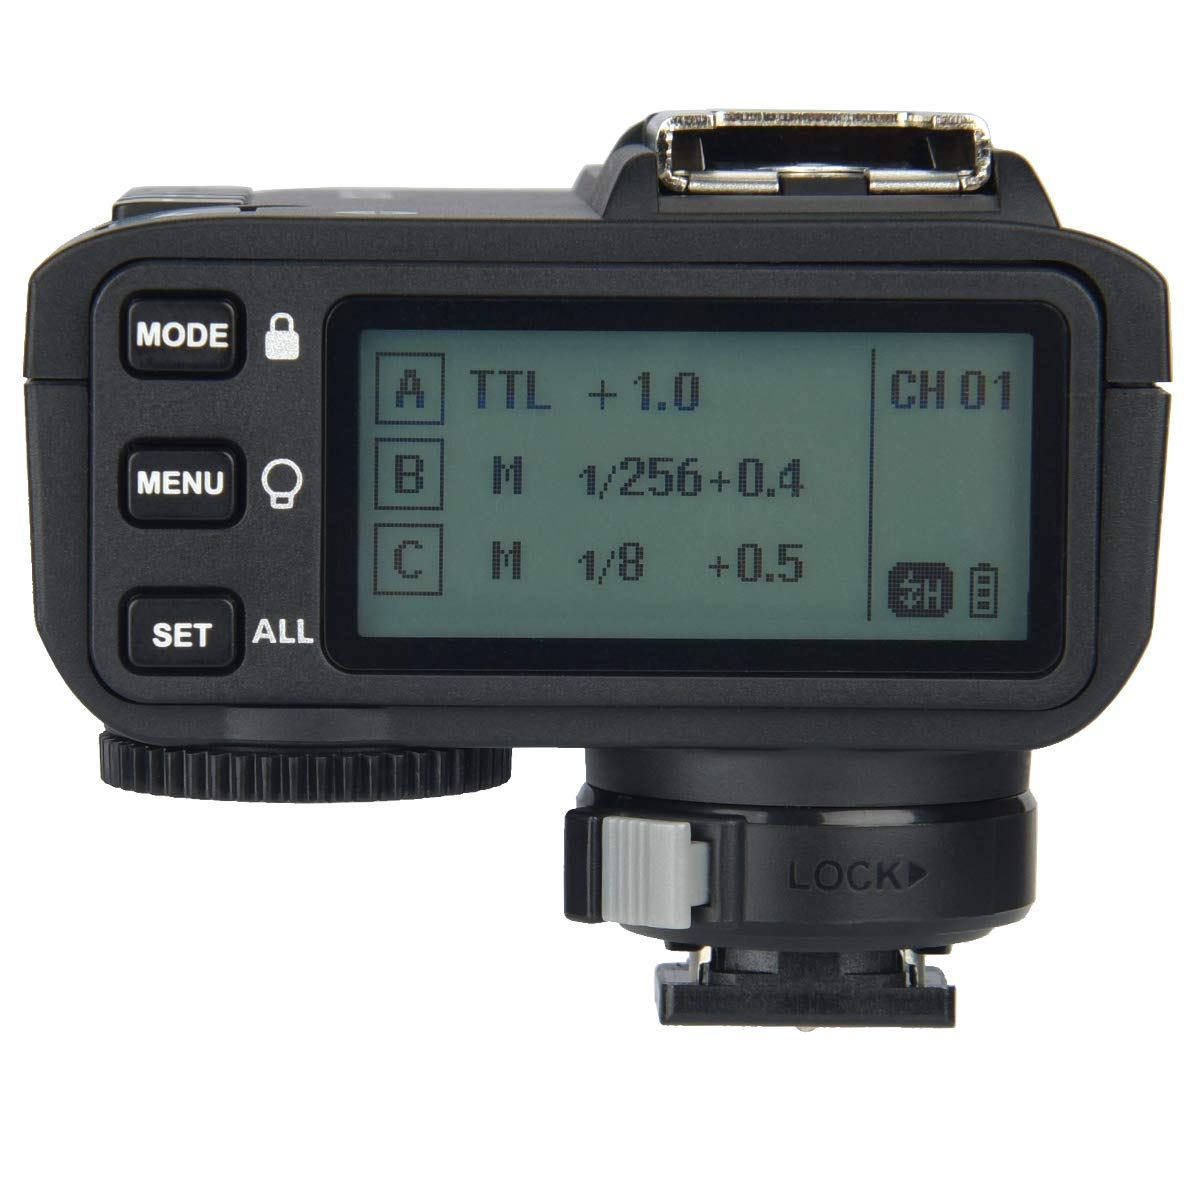 Godox X2T-S TTL Wireless Trigger, 1/8000s High-Speed Sync 2.4G TTL Transmitter, Compatible with Sony DSLR (X2T-S) by Godox (Image #2)